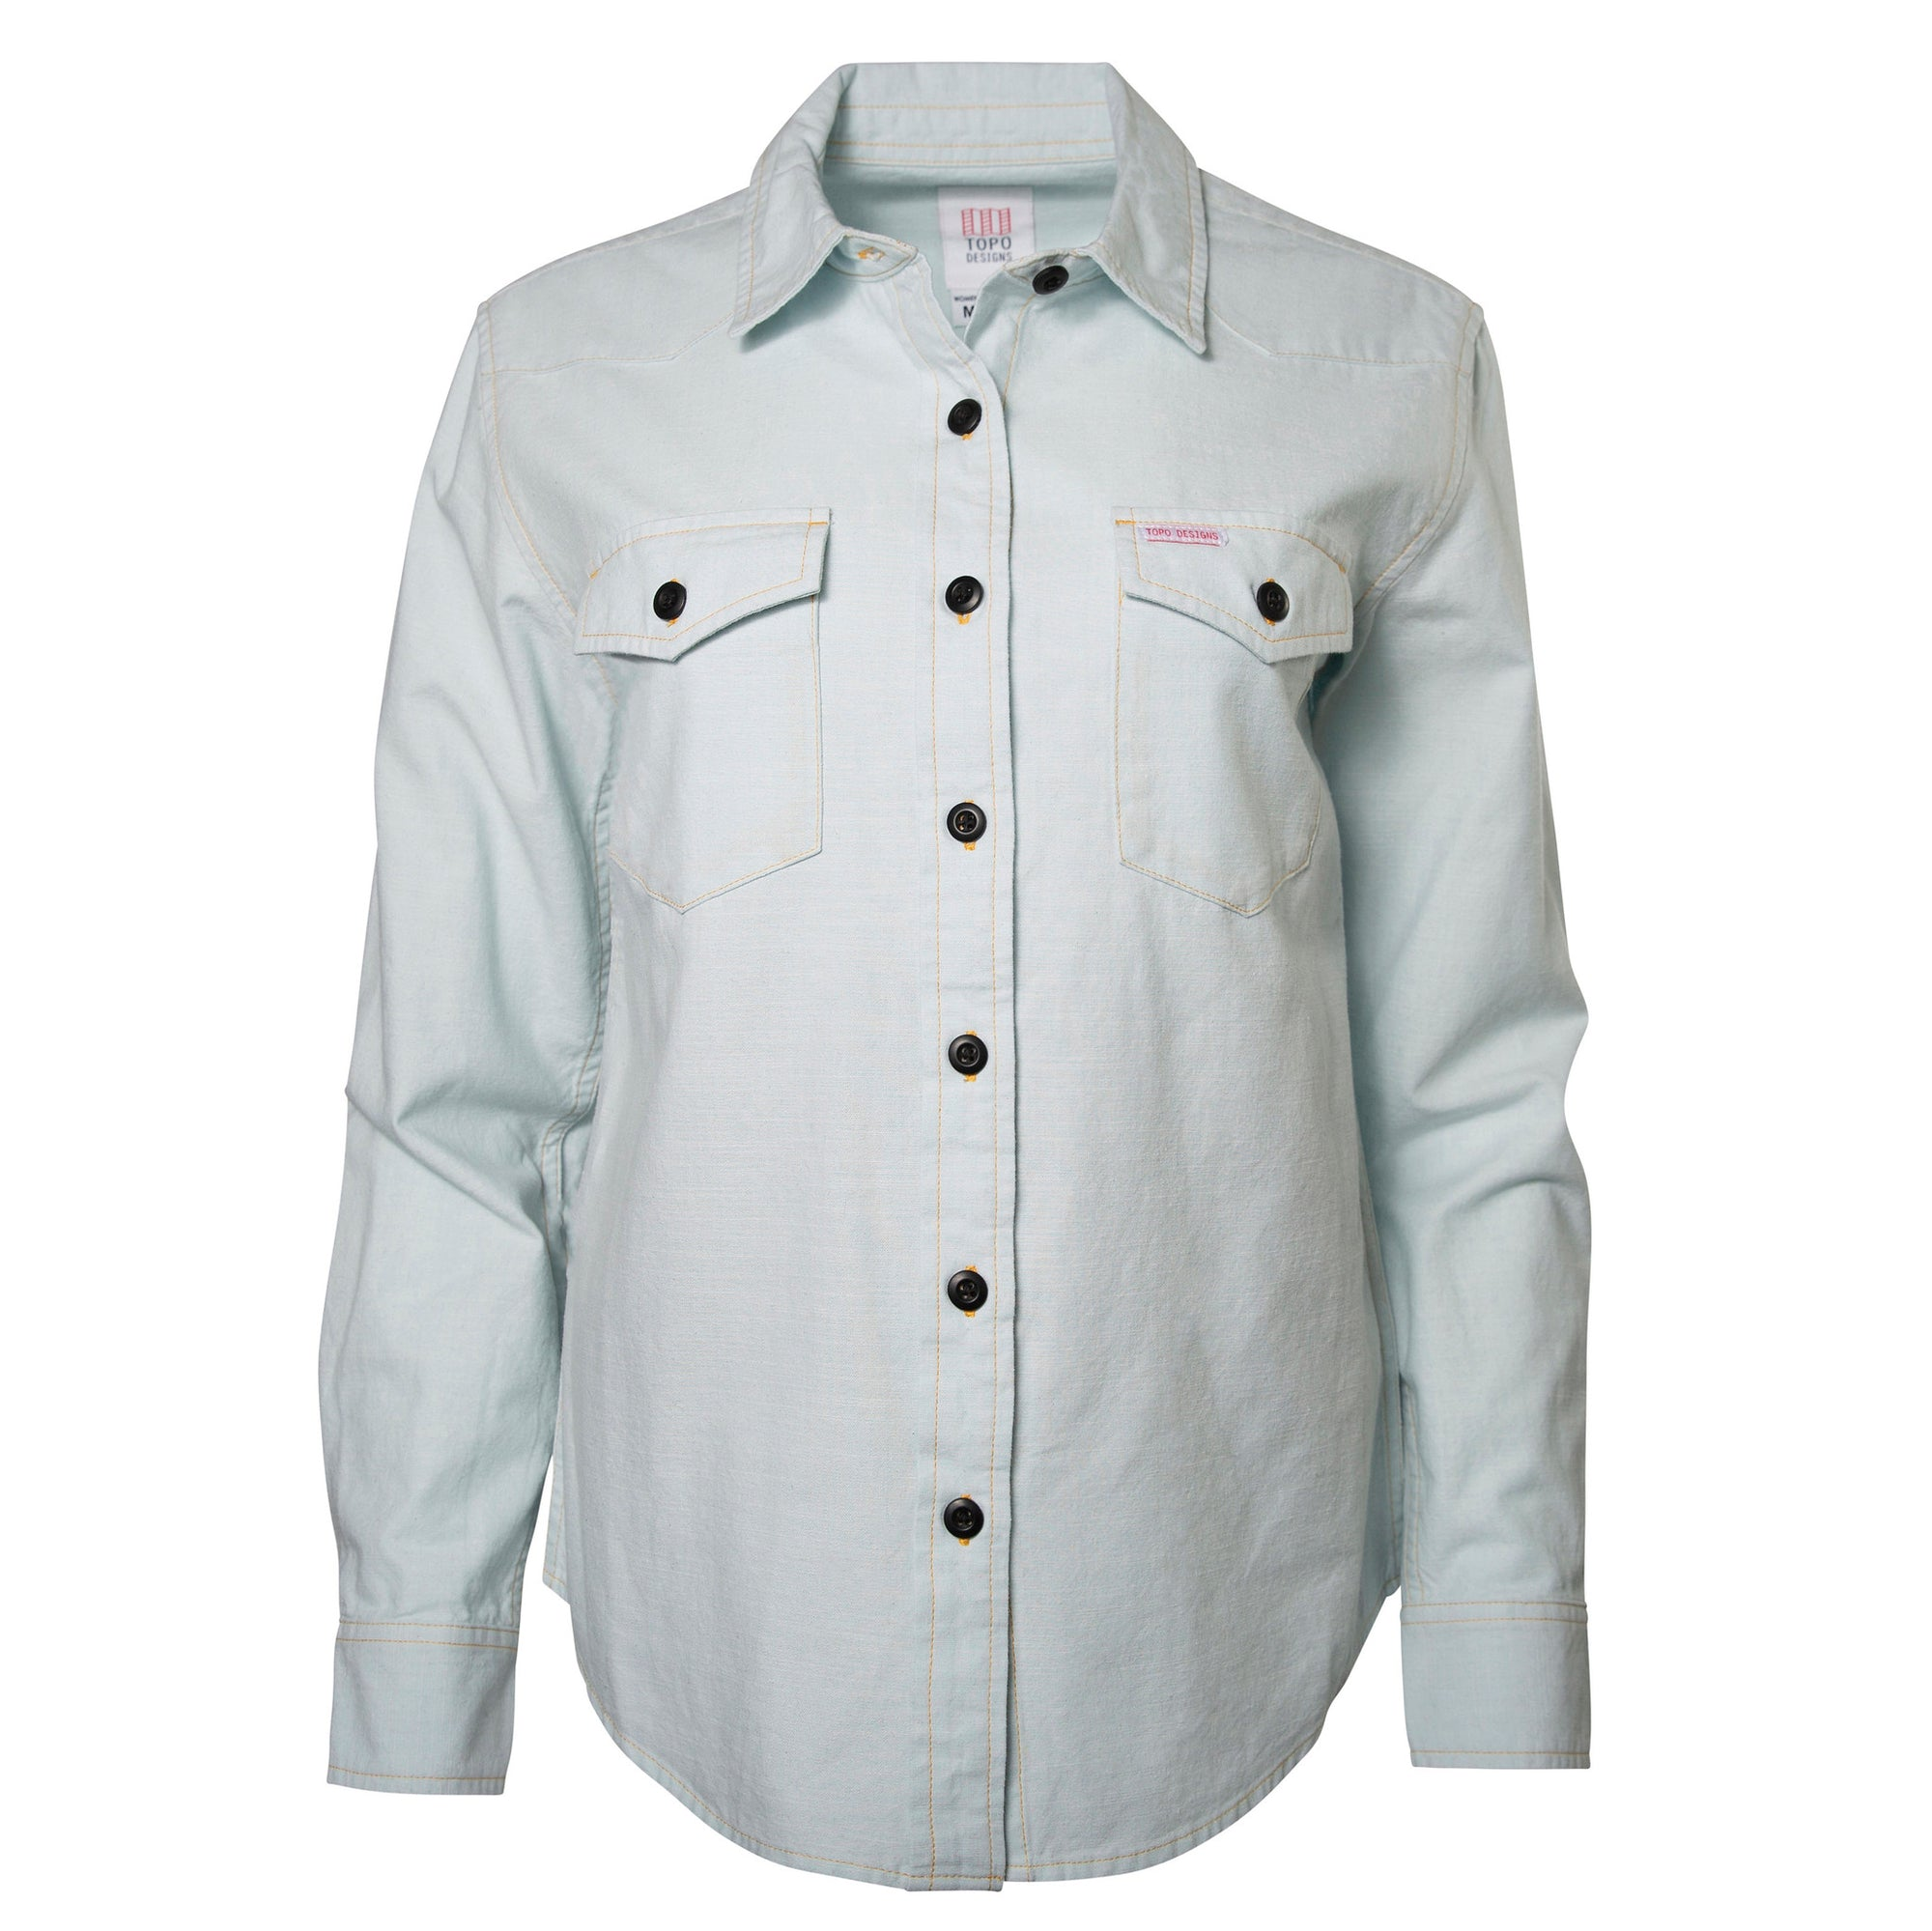 Topo Designs Women's Mountain Shirt - Chambray